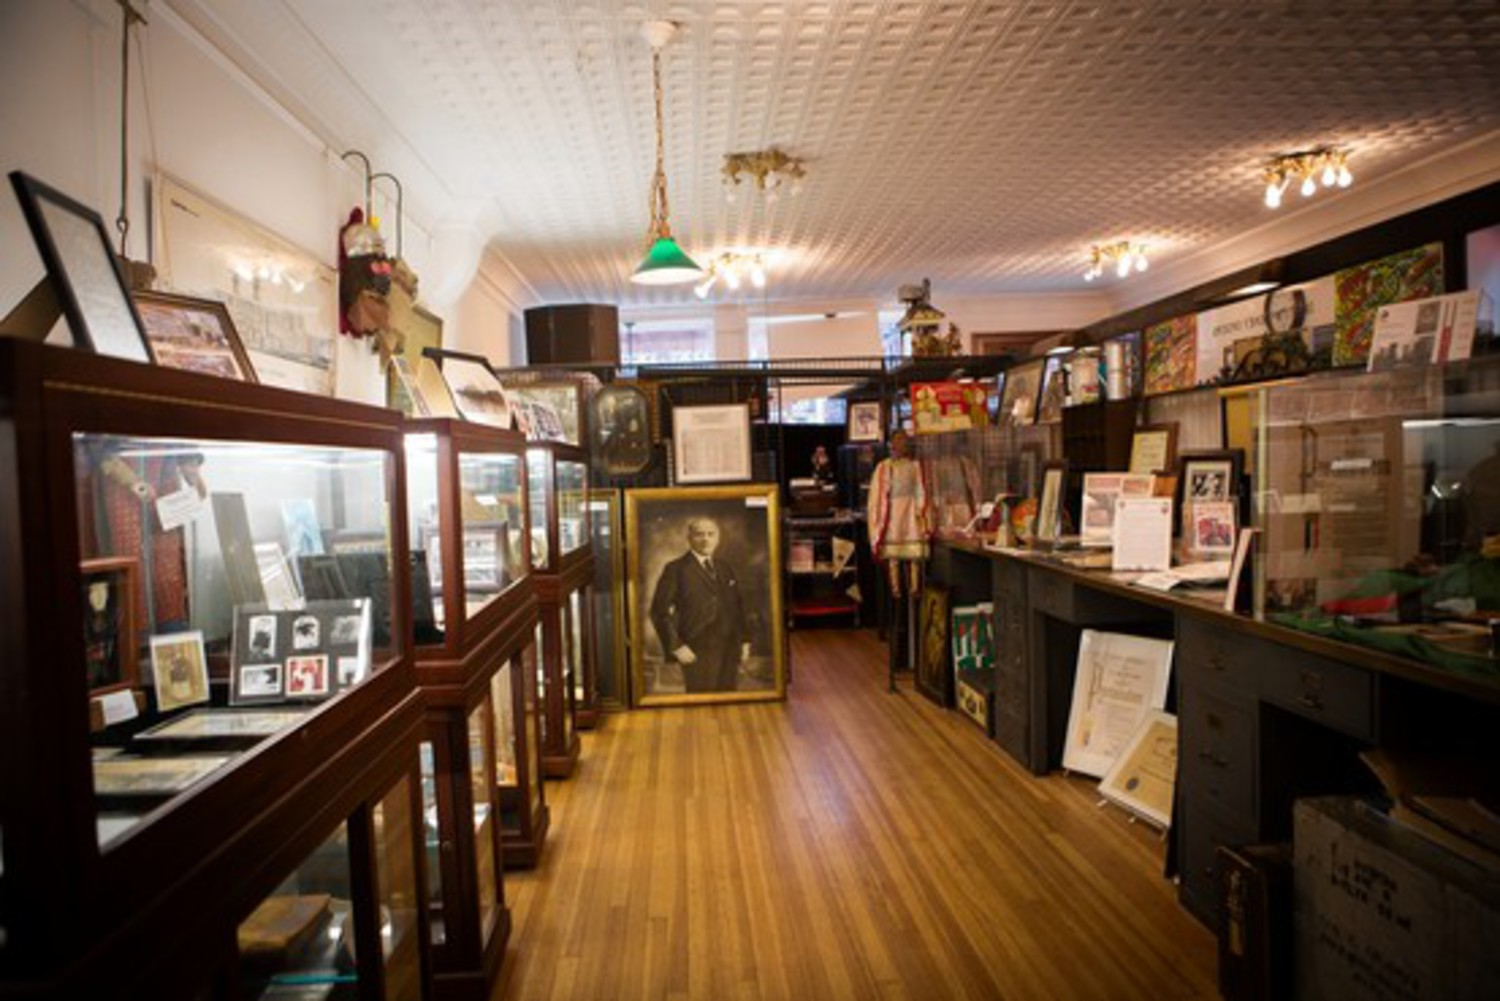 The Italian American Museum's main room offers displays of antique items representing Italian American culture.